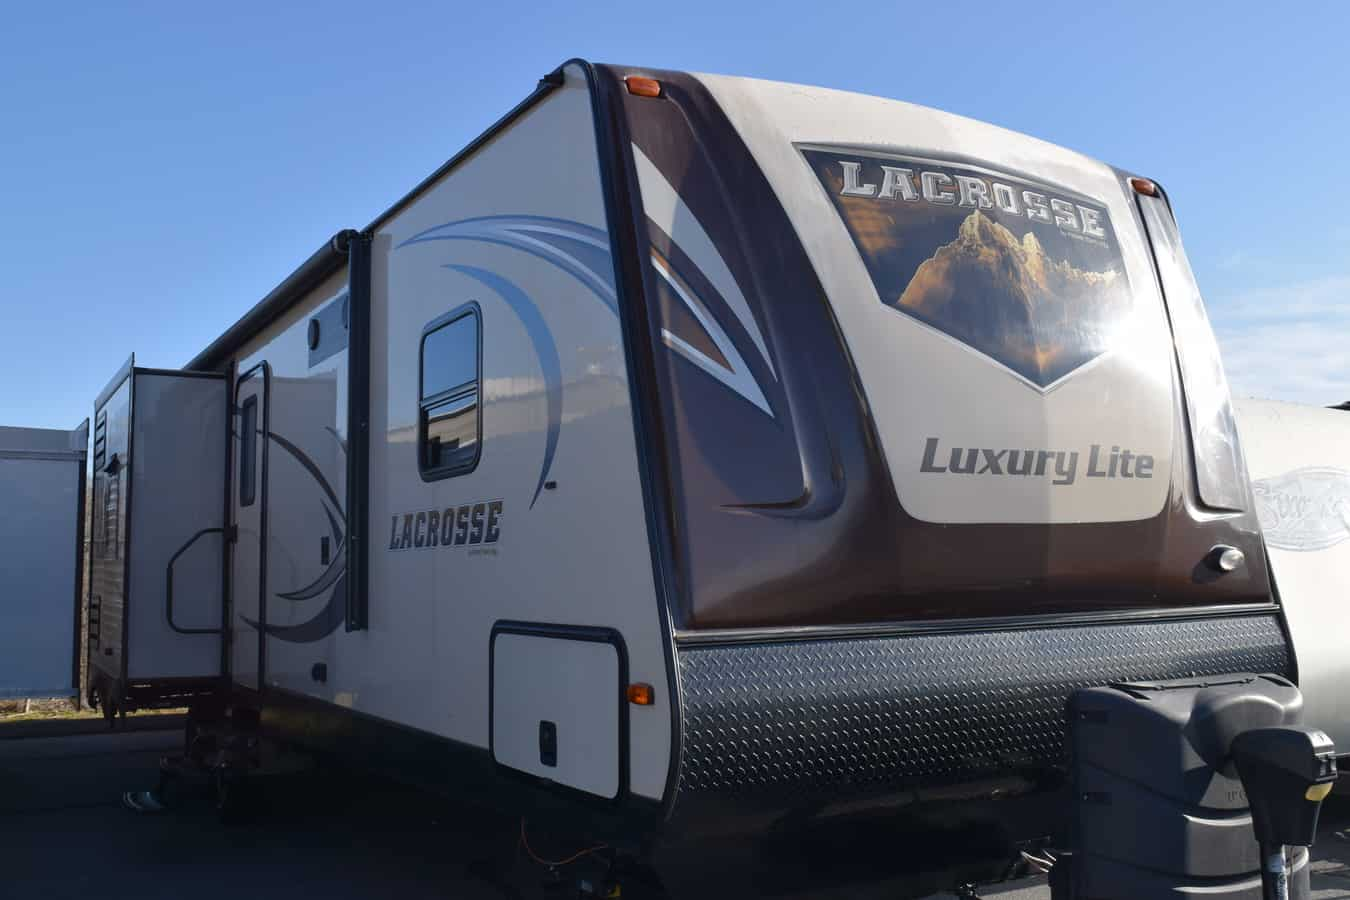 USED 2016 Primetime LACROSSE 329BHT - Three Way Campers